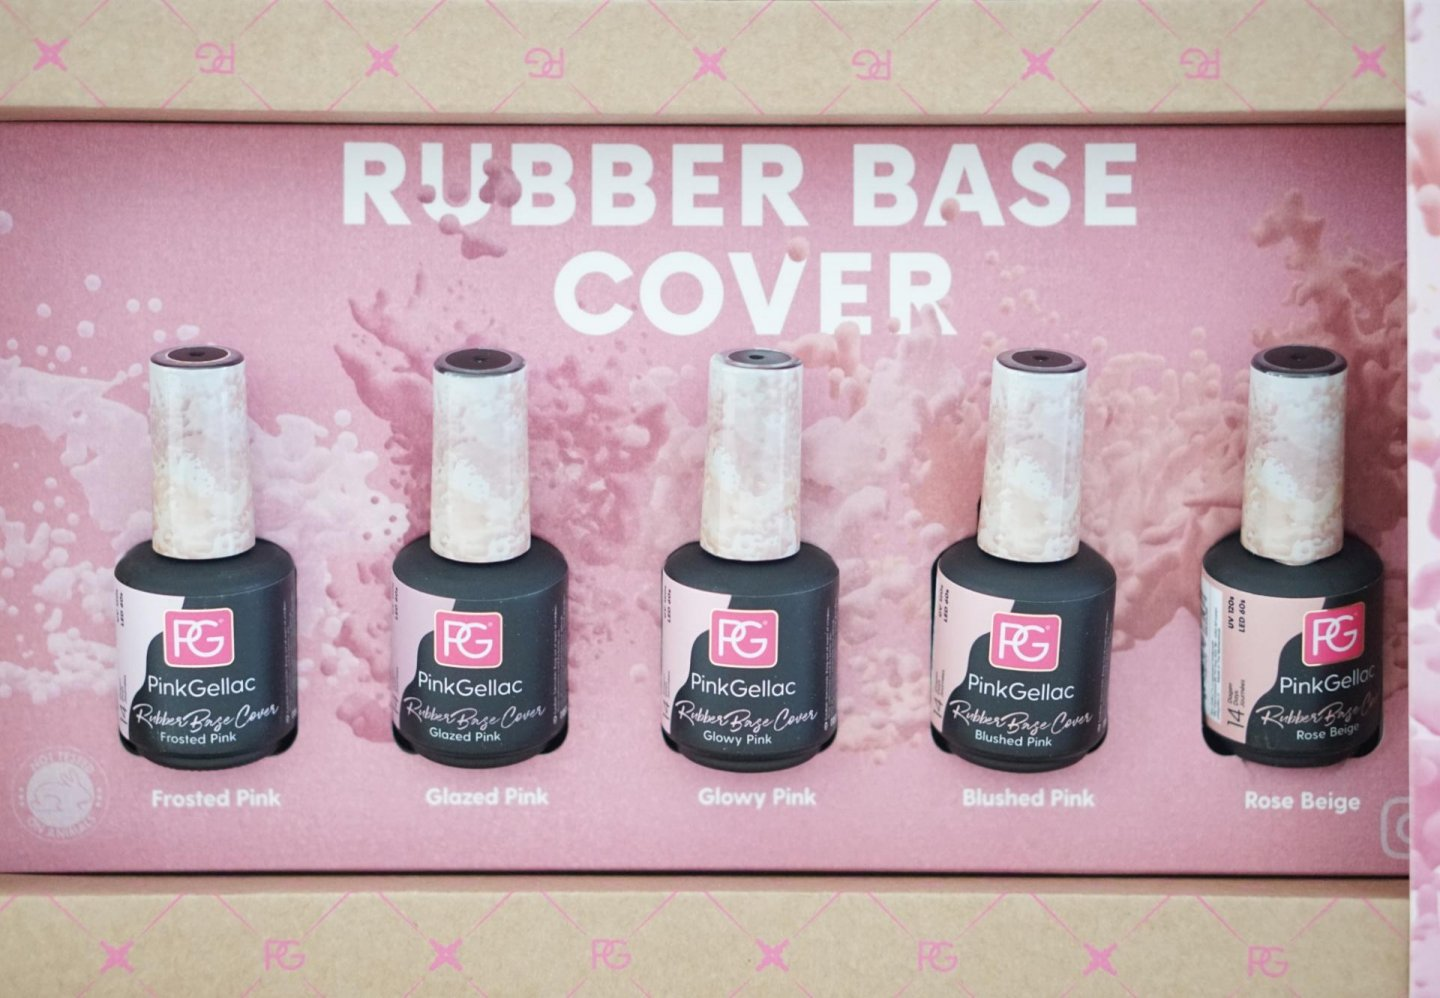 Pink Gellac Rubber Base Cover review